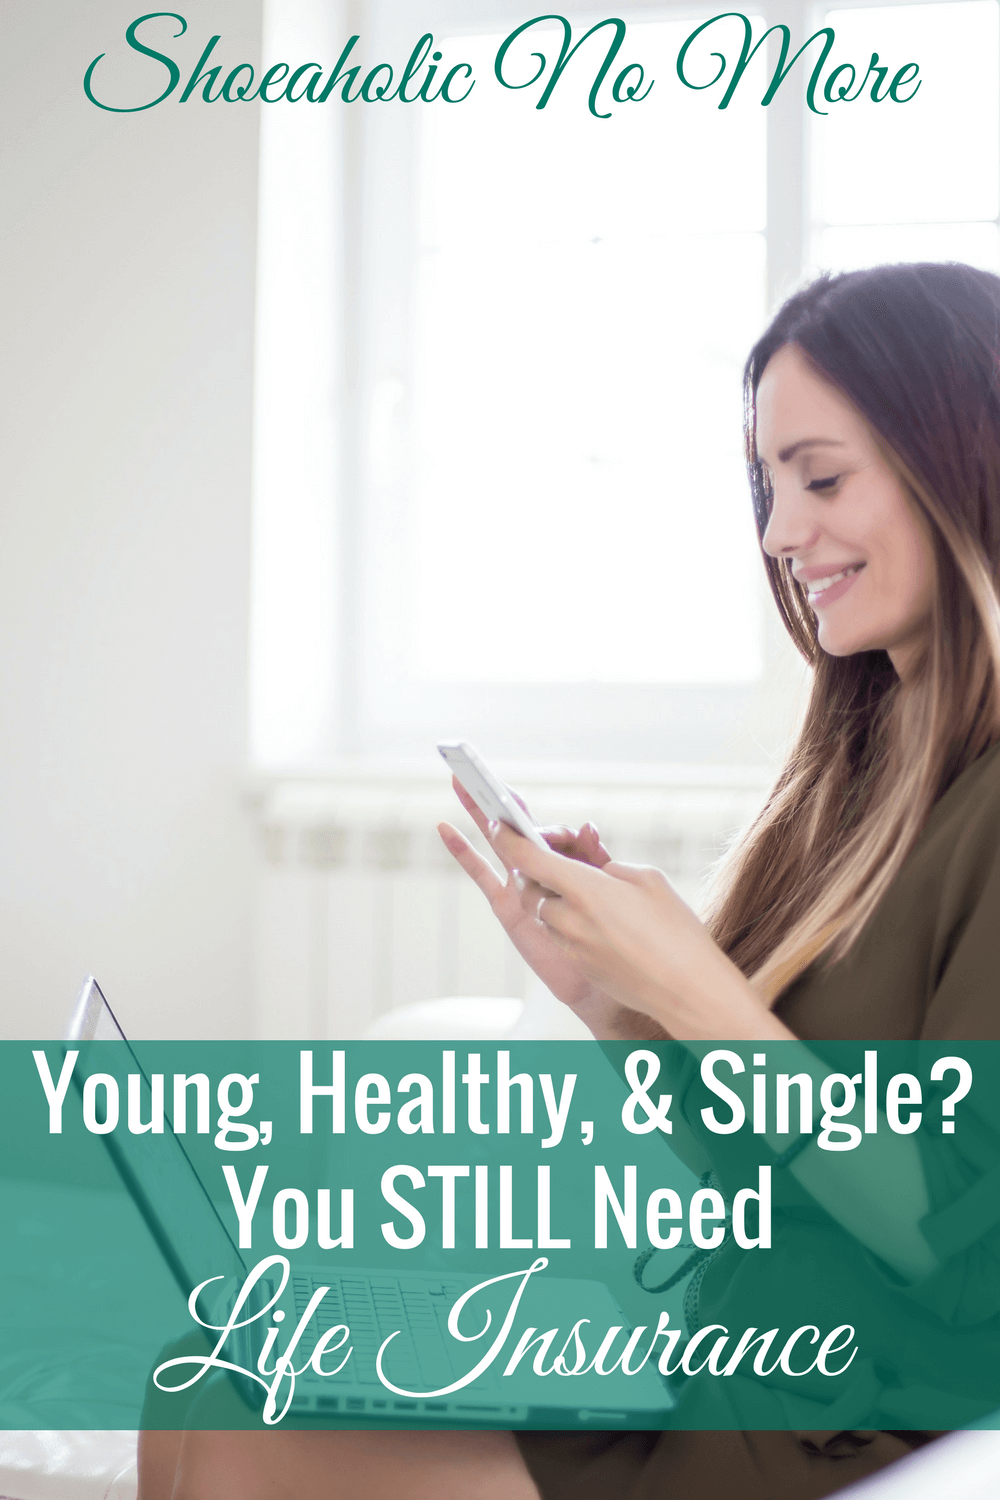 Young and Healthy You Still Need Insurance